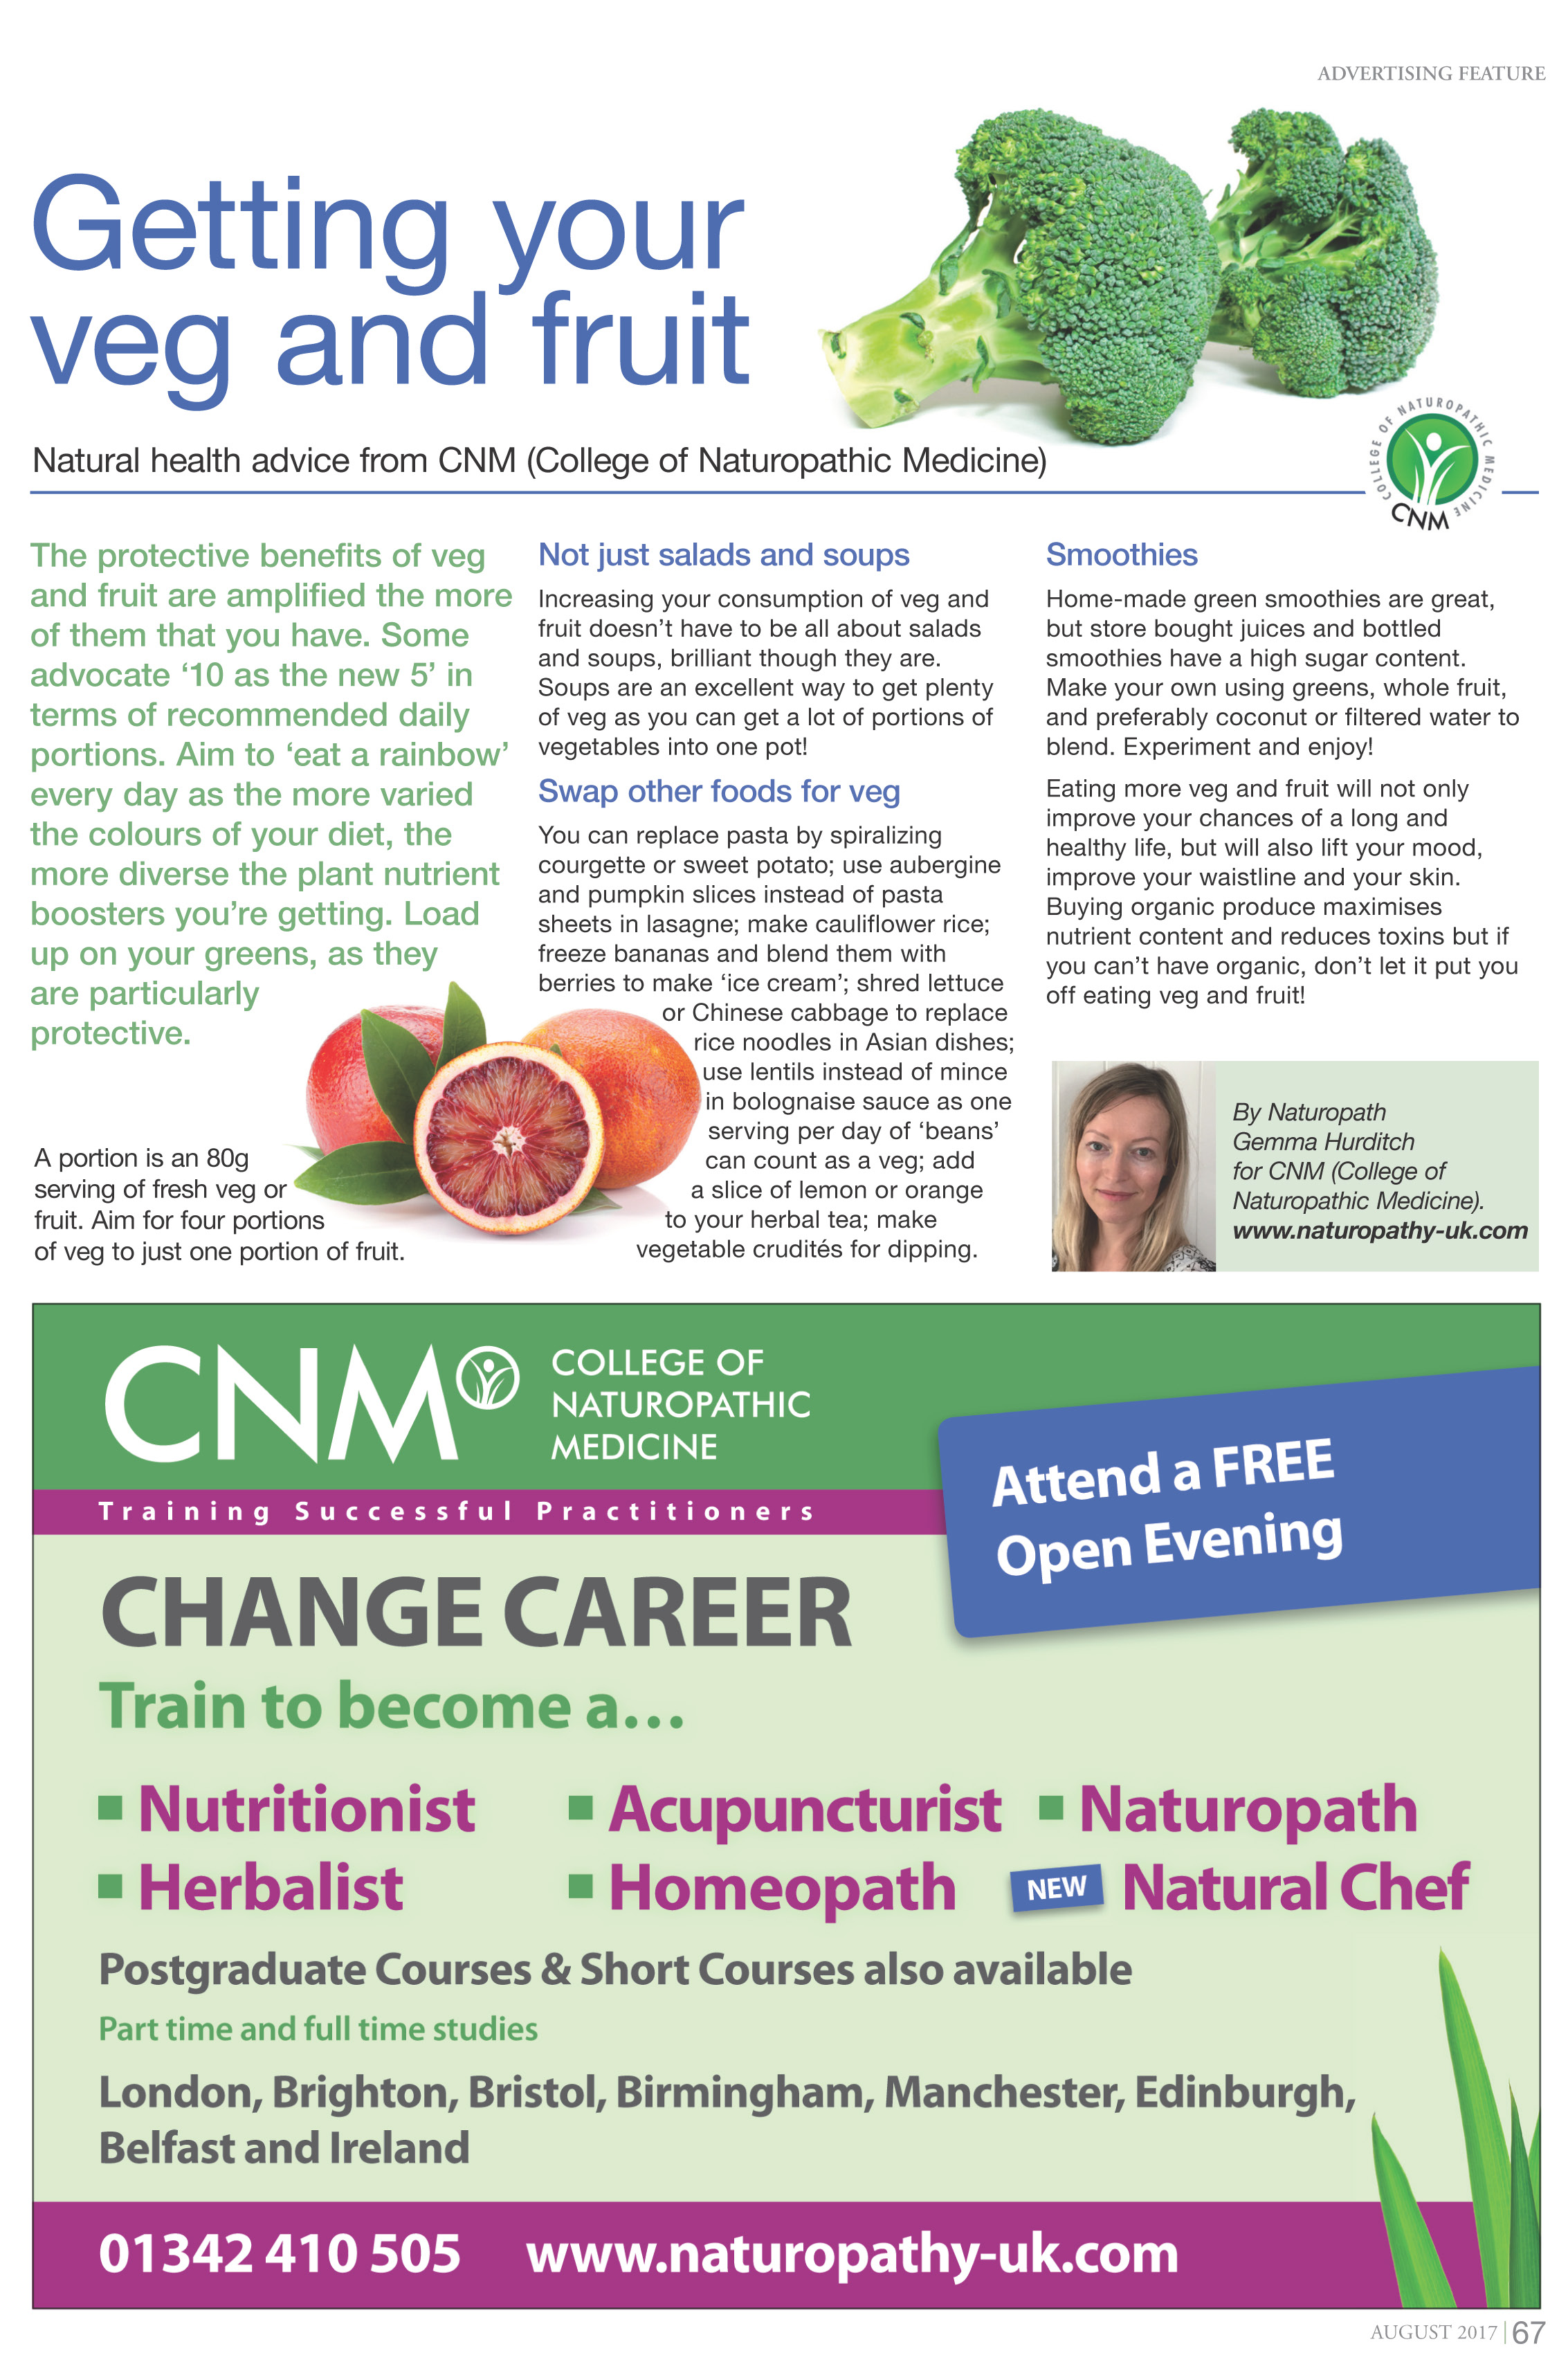 Magnet Aug 17 Fruit and Veg GH - CNM - Diploma Courses in Nutrition ...